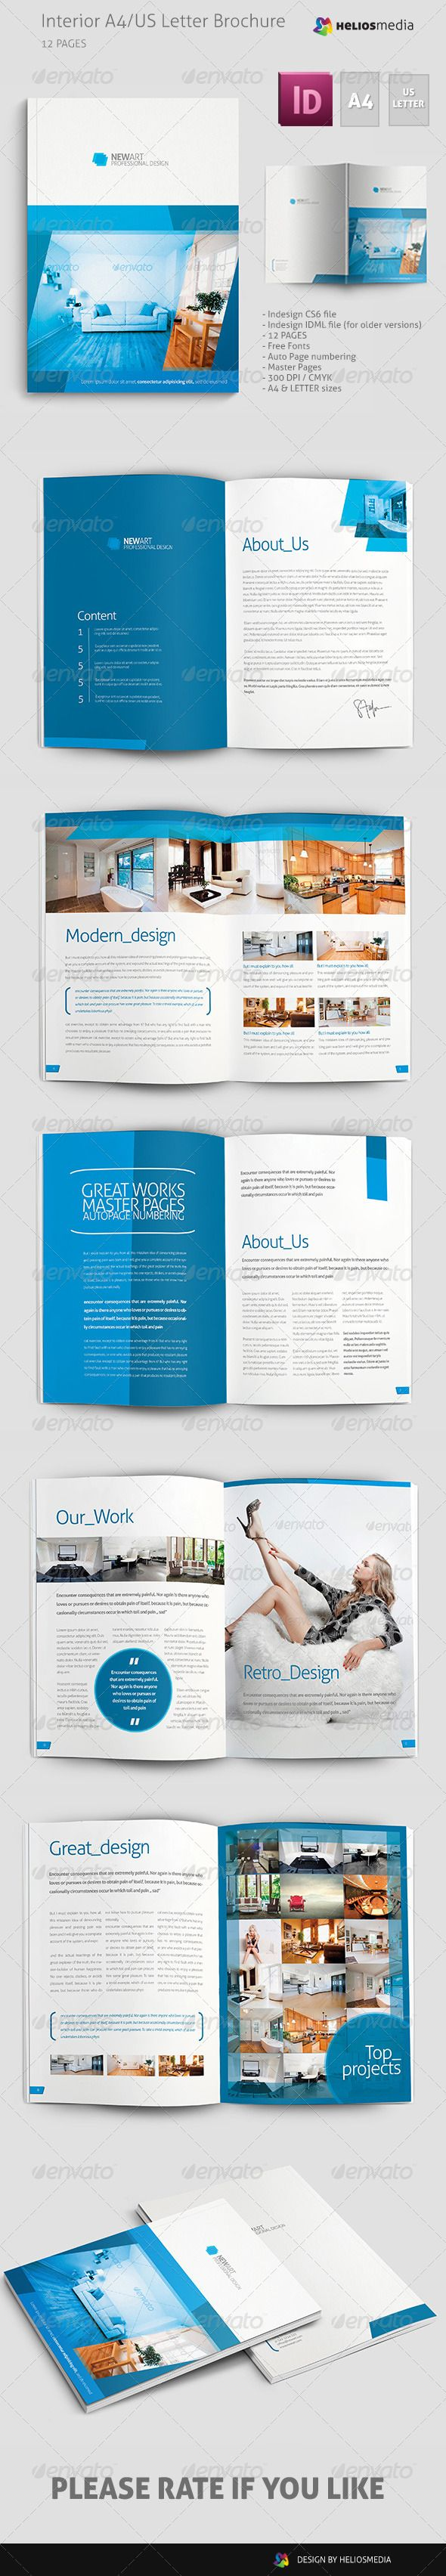 Interior Brochure / Catalog  #GraphicRiver           	 Simple and Clean Interior or Corporate Brochure.    	 FEATURES   	 - Indesign CS6 file - Indesign IDML file (for older versions) - 12 PAGES - Free Fonts - Auto Page numbering - Master Pages - 300 DPI / CMYK - A4 & LETTER sizes + bleeds - Images are not included  	 FONTS   	 ALLER –  .fontsquirrel /fonts/Aller   	   	                                     	   Created: 15August13 GraphicsFilesIncluded: InDesignINDD Layered: No…